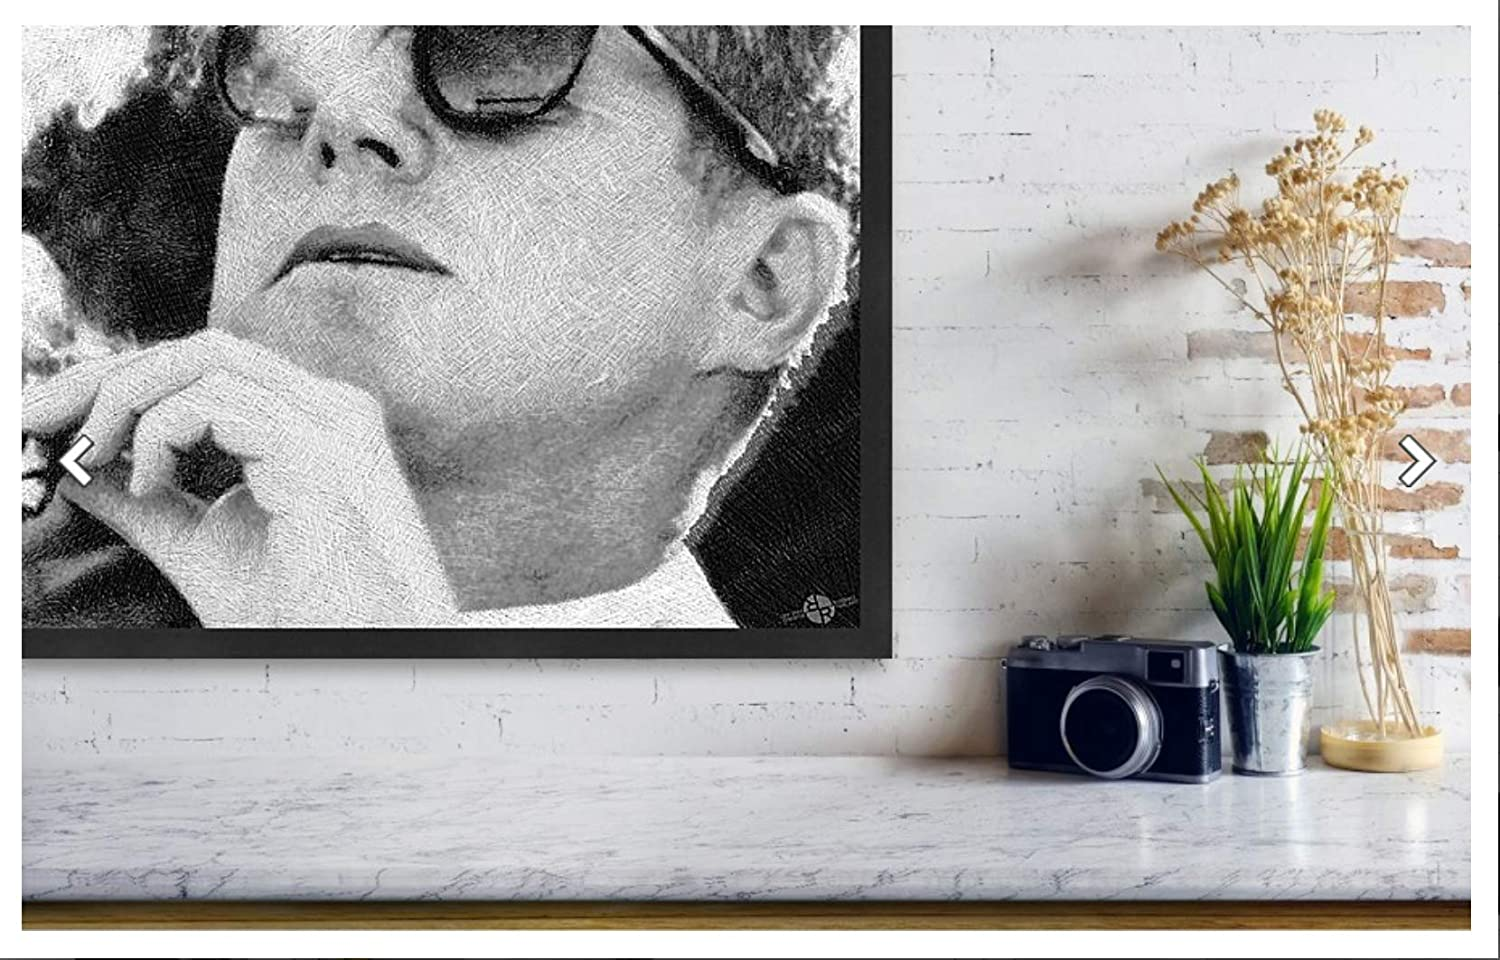 Amazon.com: JFK - Gafas de sol, color blanco y negro (7.9 x ...